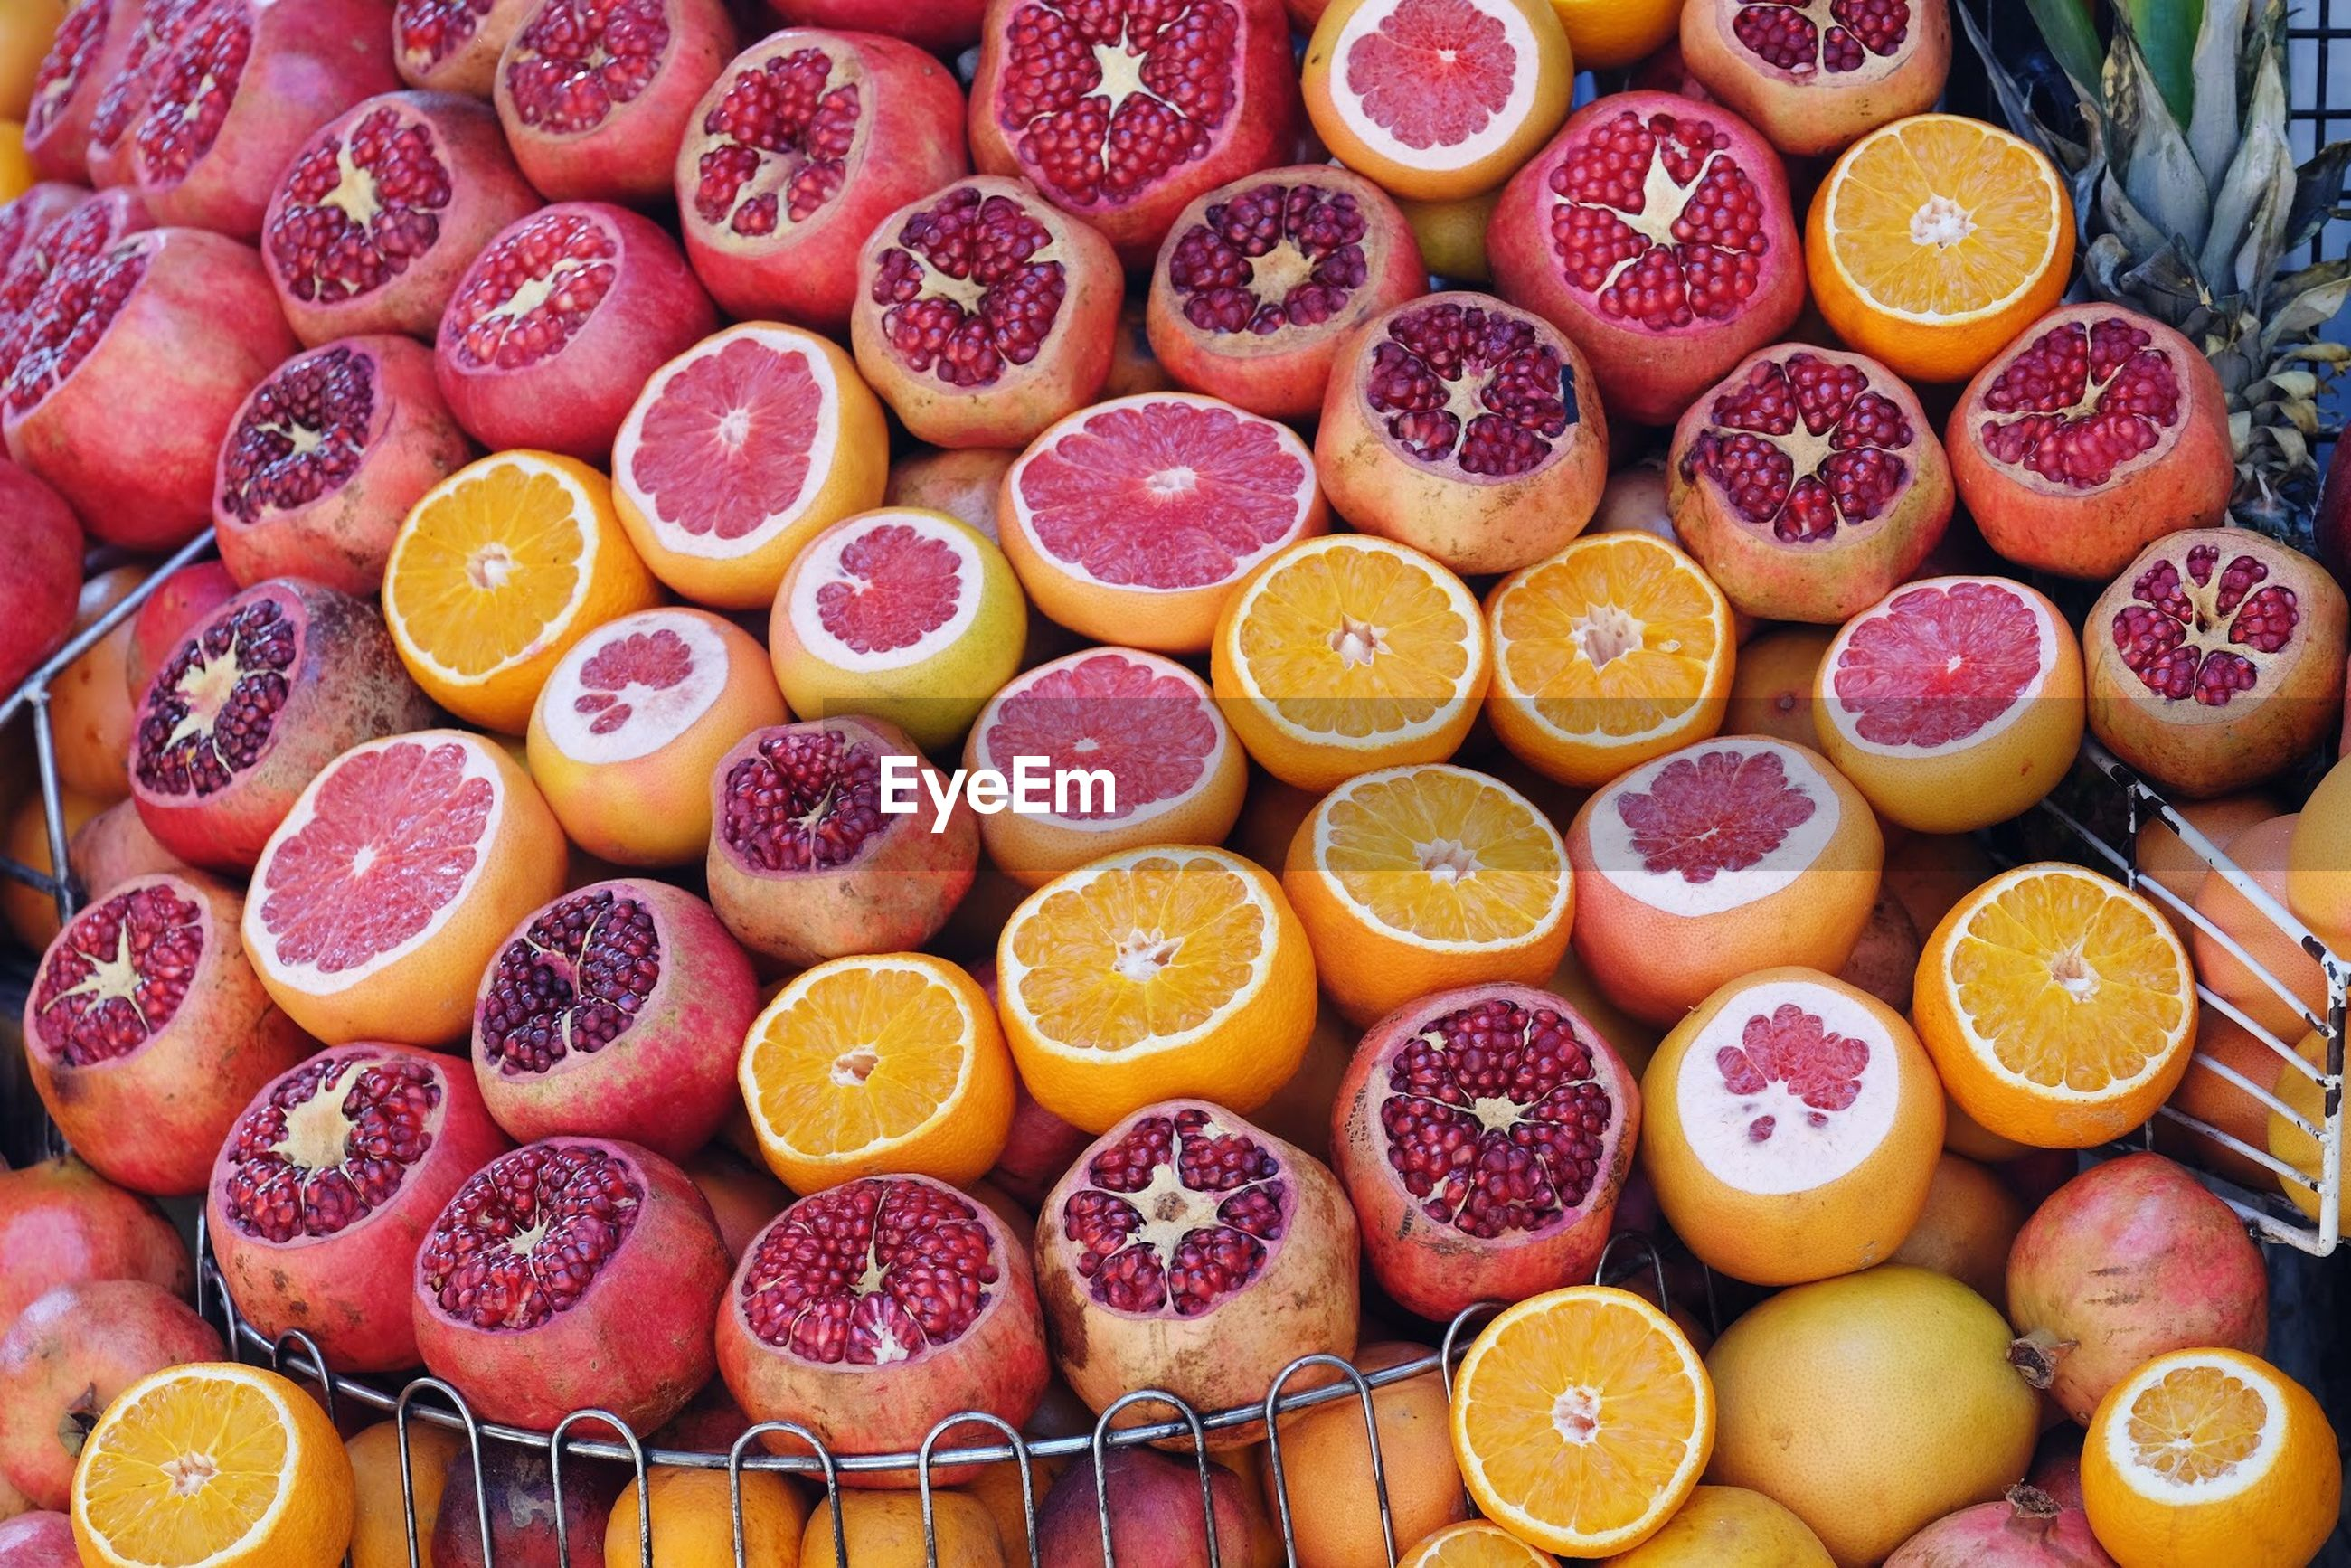 High angle view of grapefruits and pomegranates for sale in market